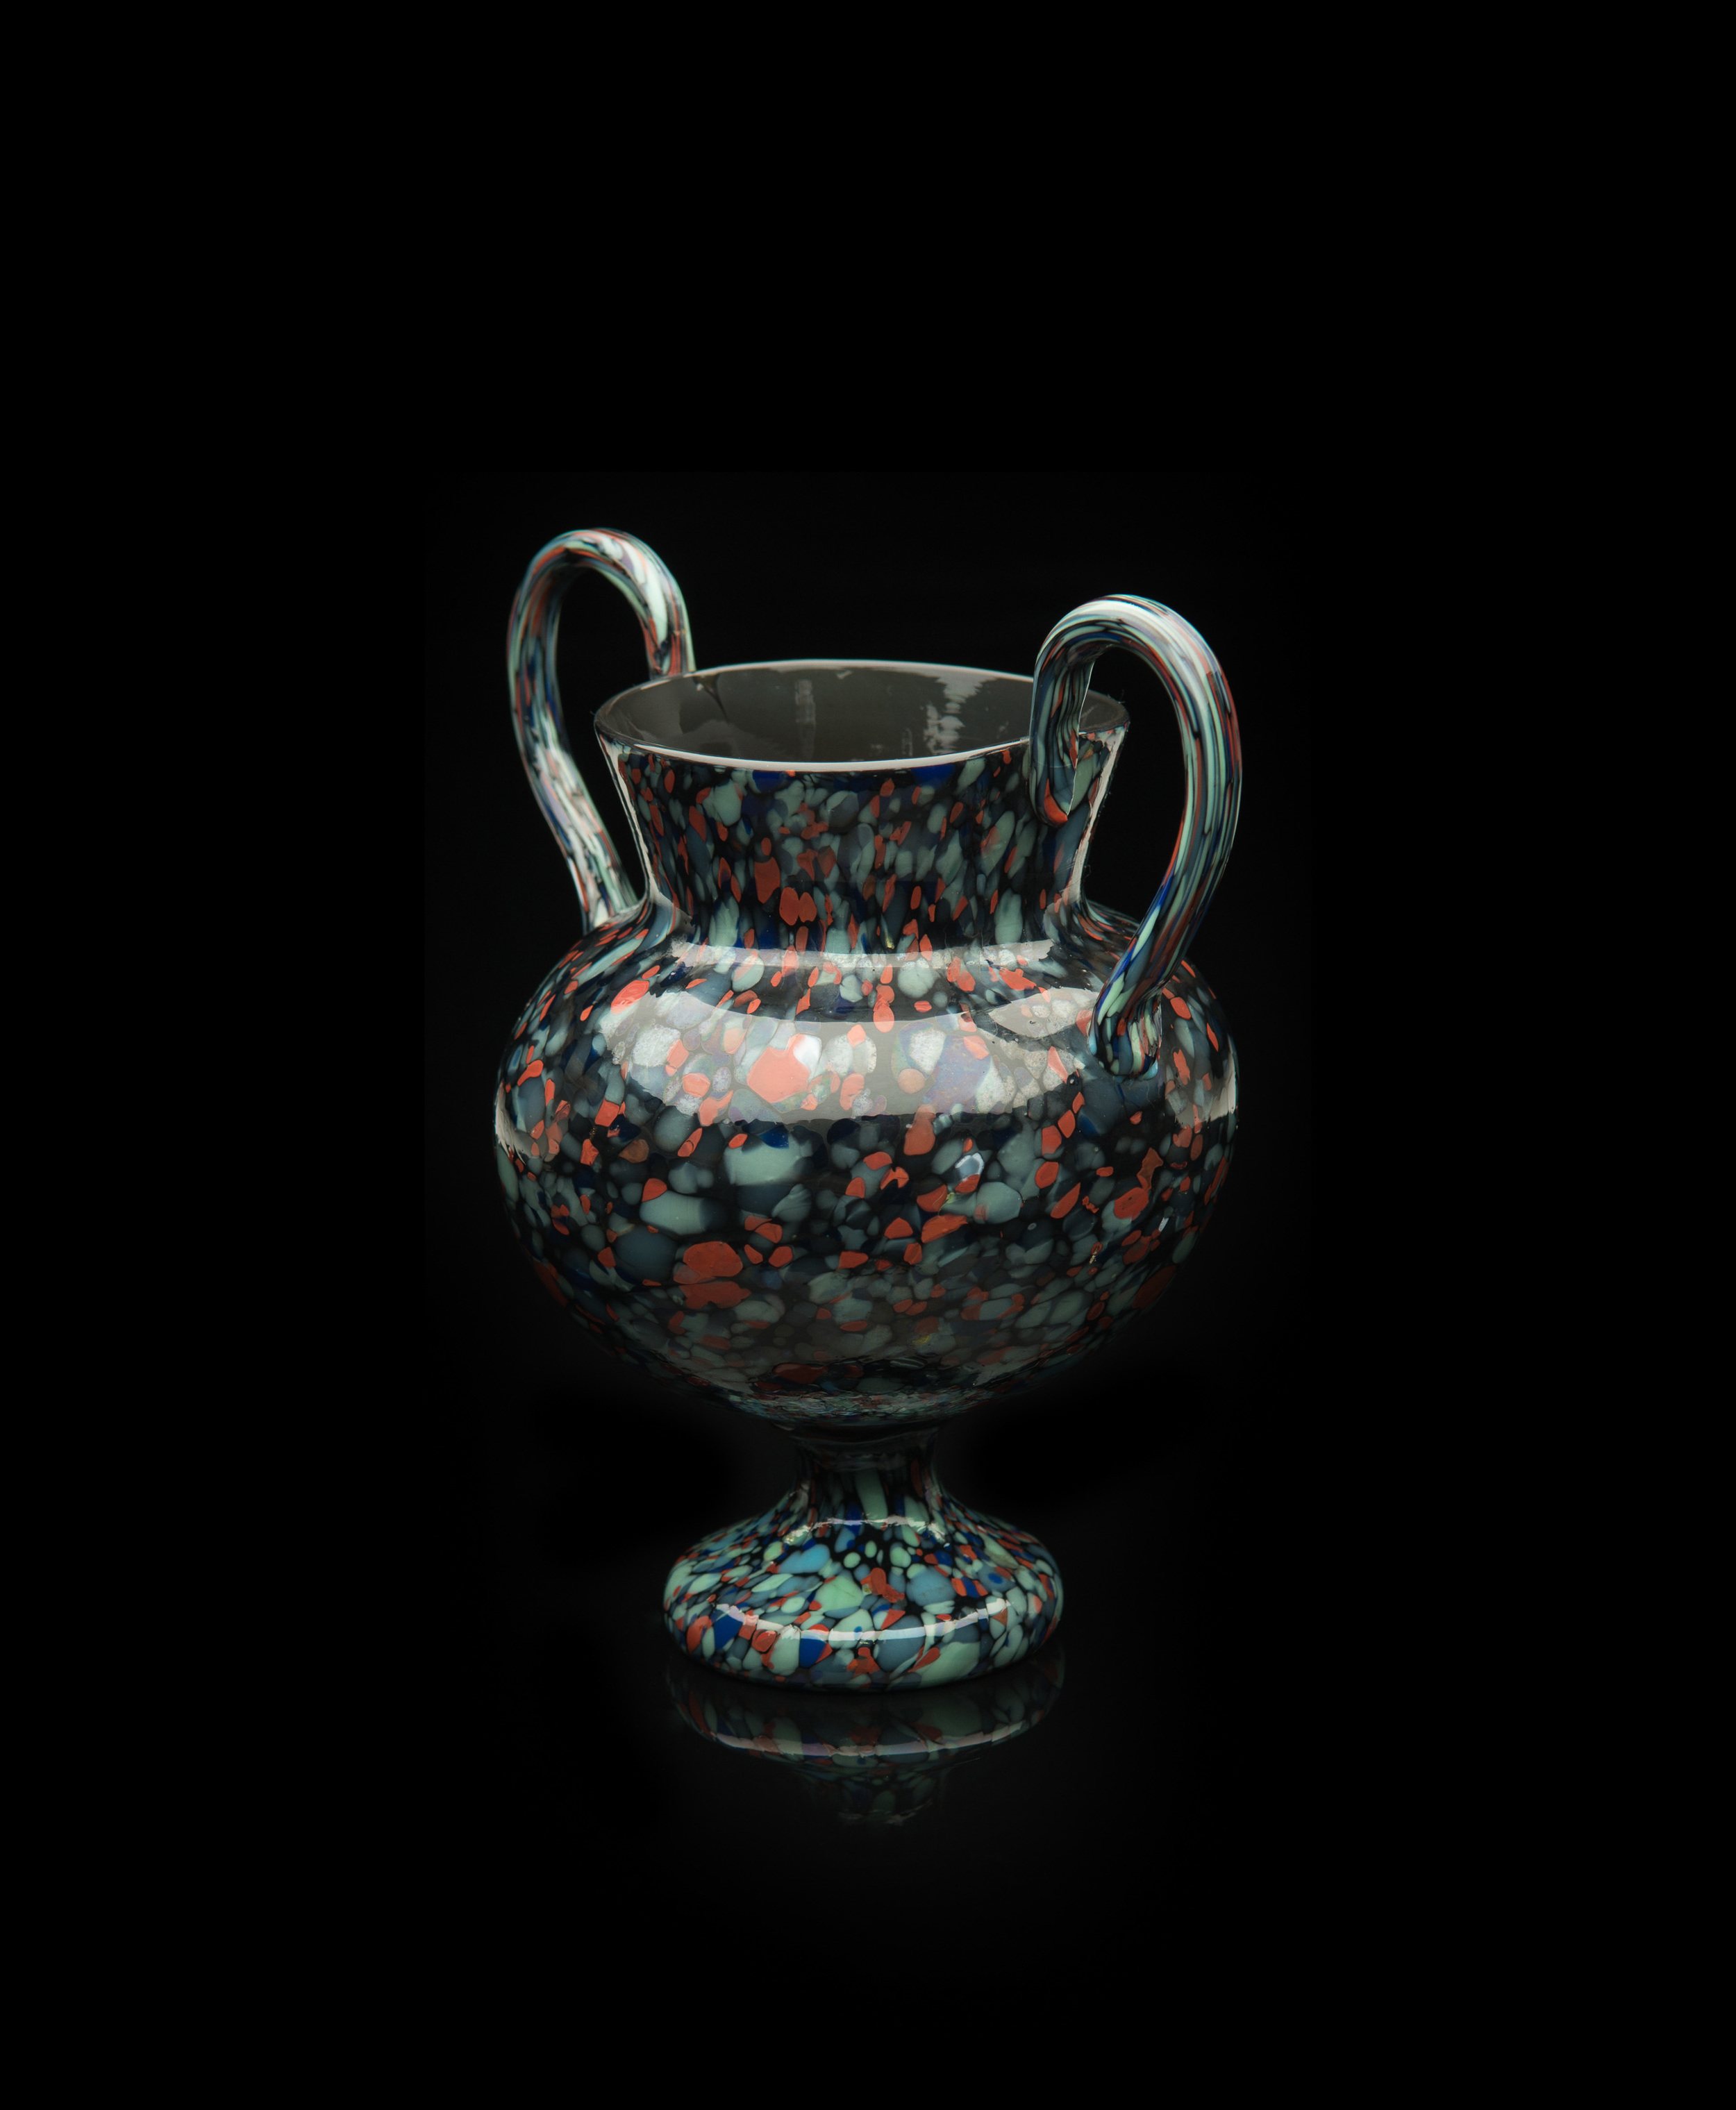 Francesco Ferro e Figlio, Vase with Applied Handles and Polychrome Inclusions (glass, 7 1/4 x 6 1/2 x 4 3/4inches), VV.535